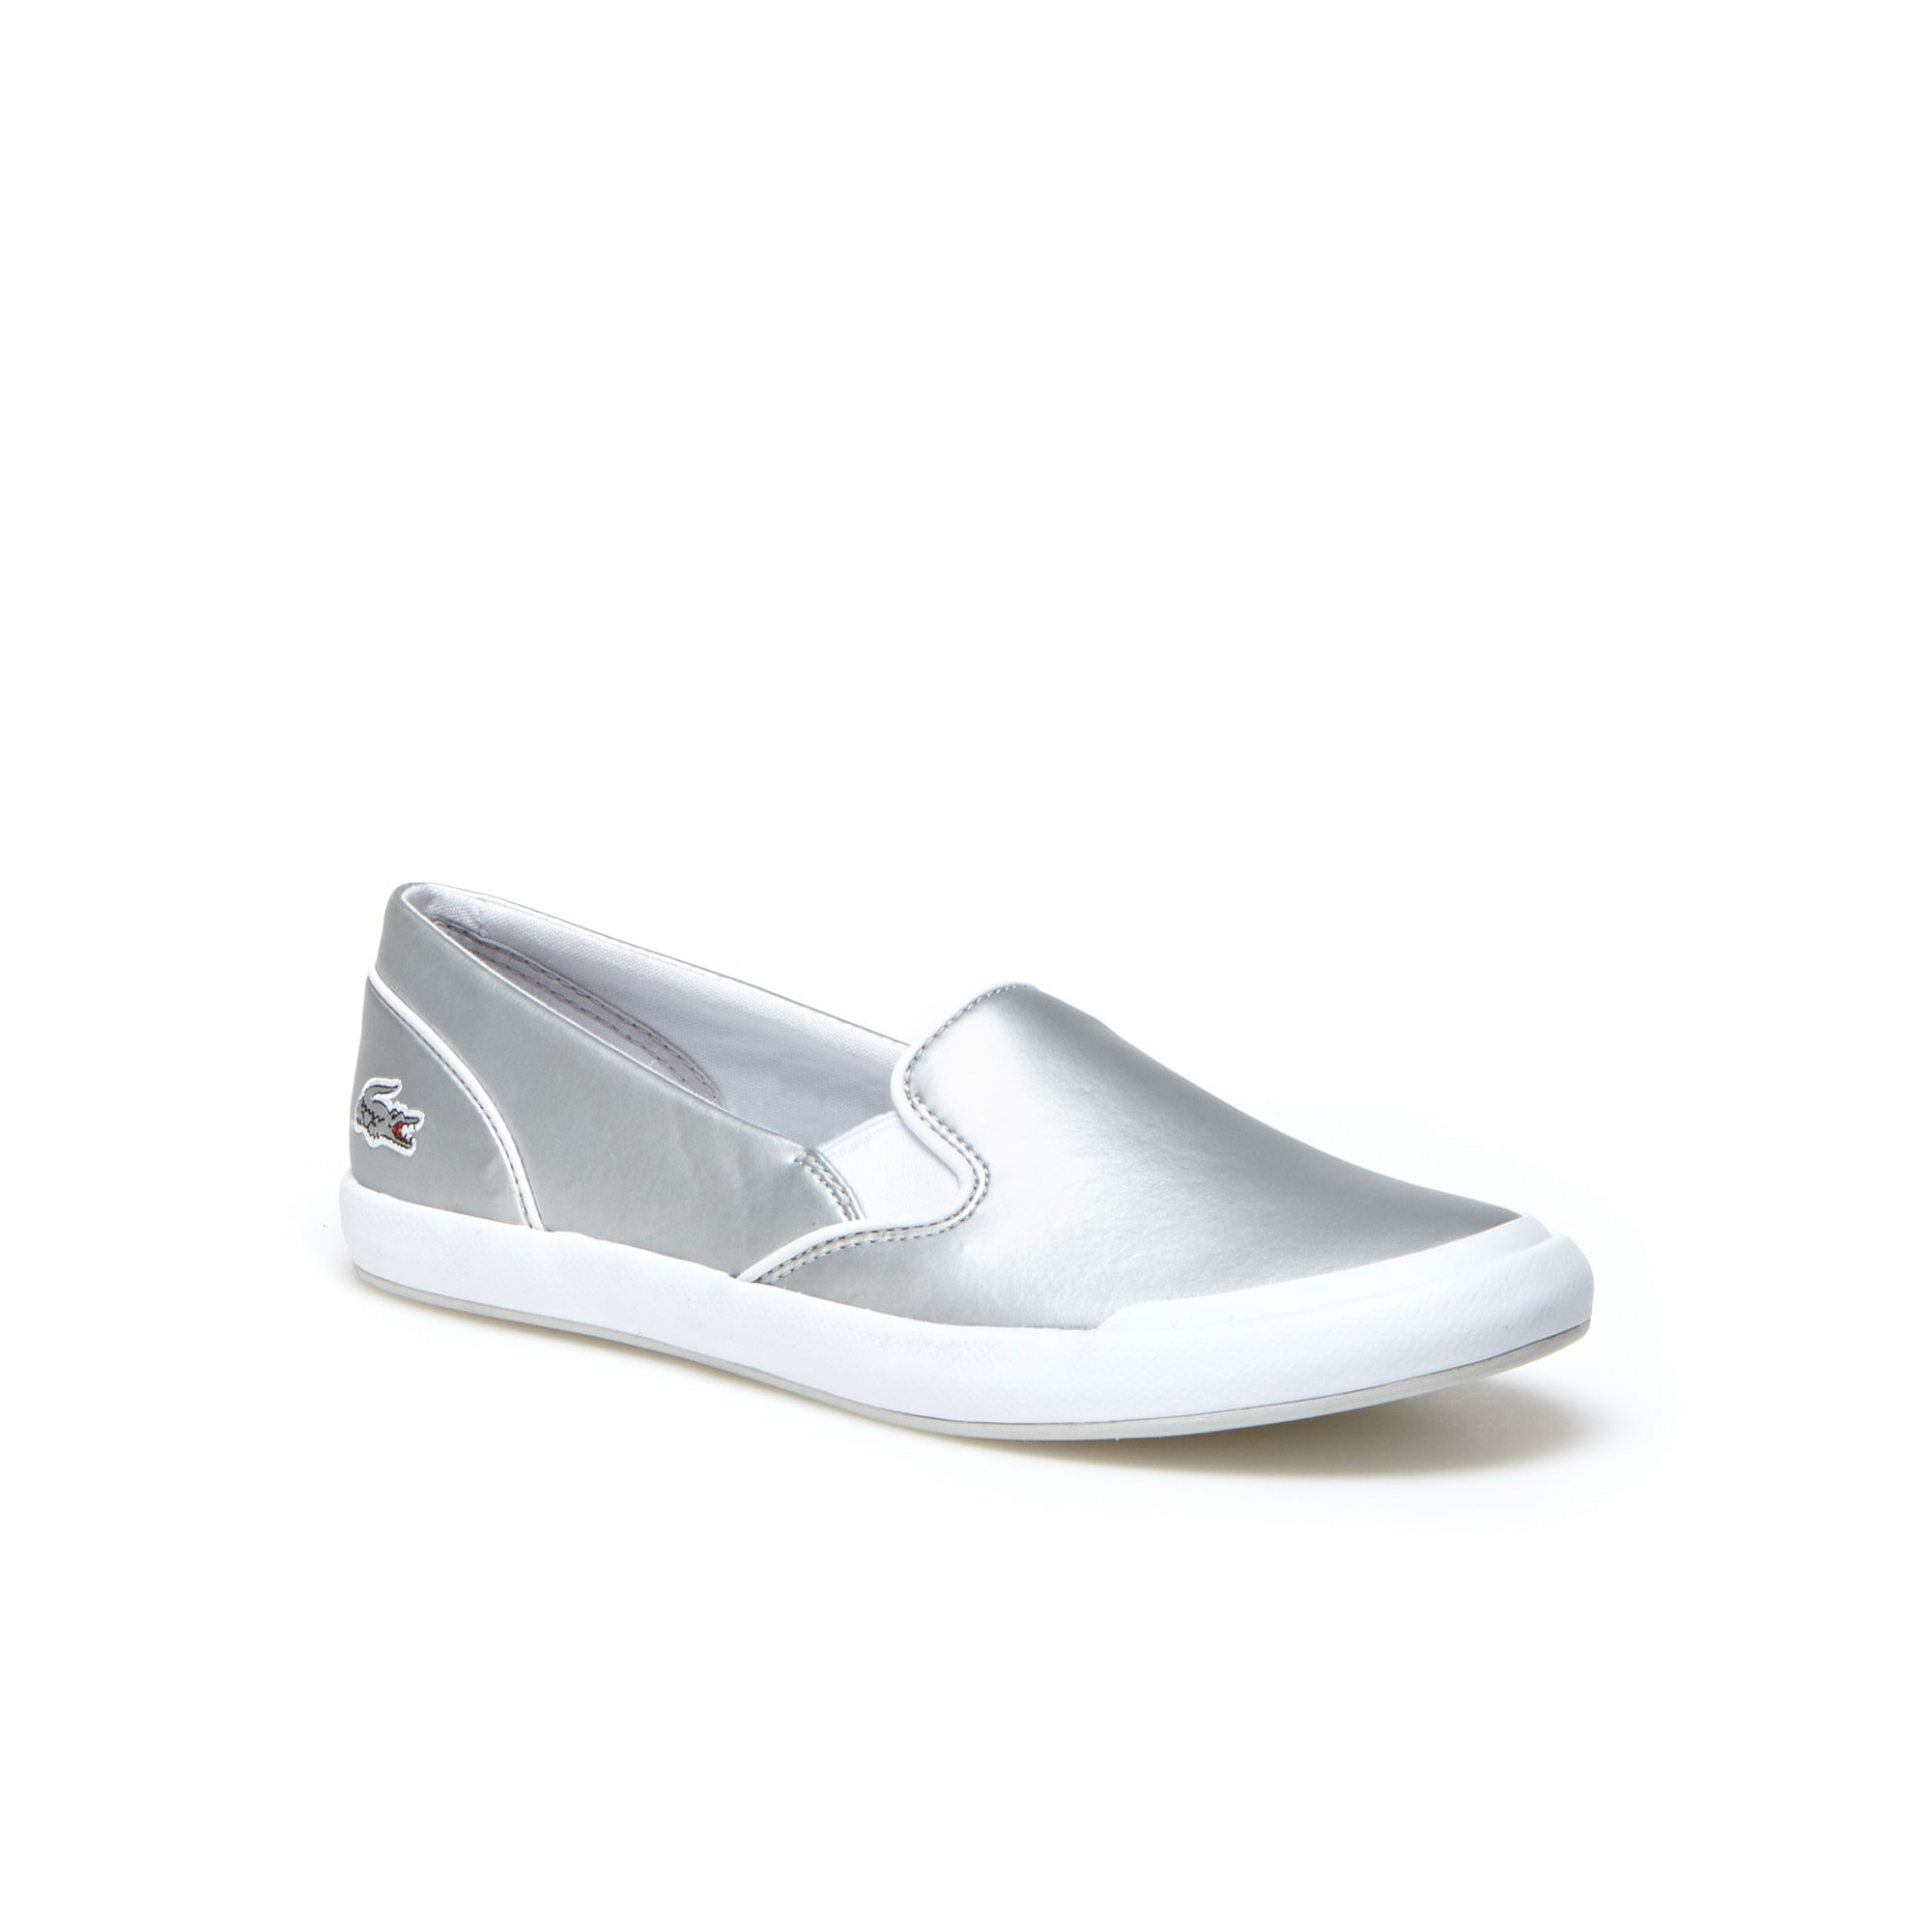 Women's Lancelle Slip-on Leather Sneakers